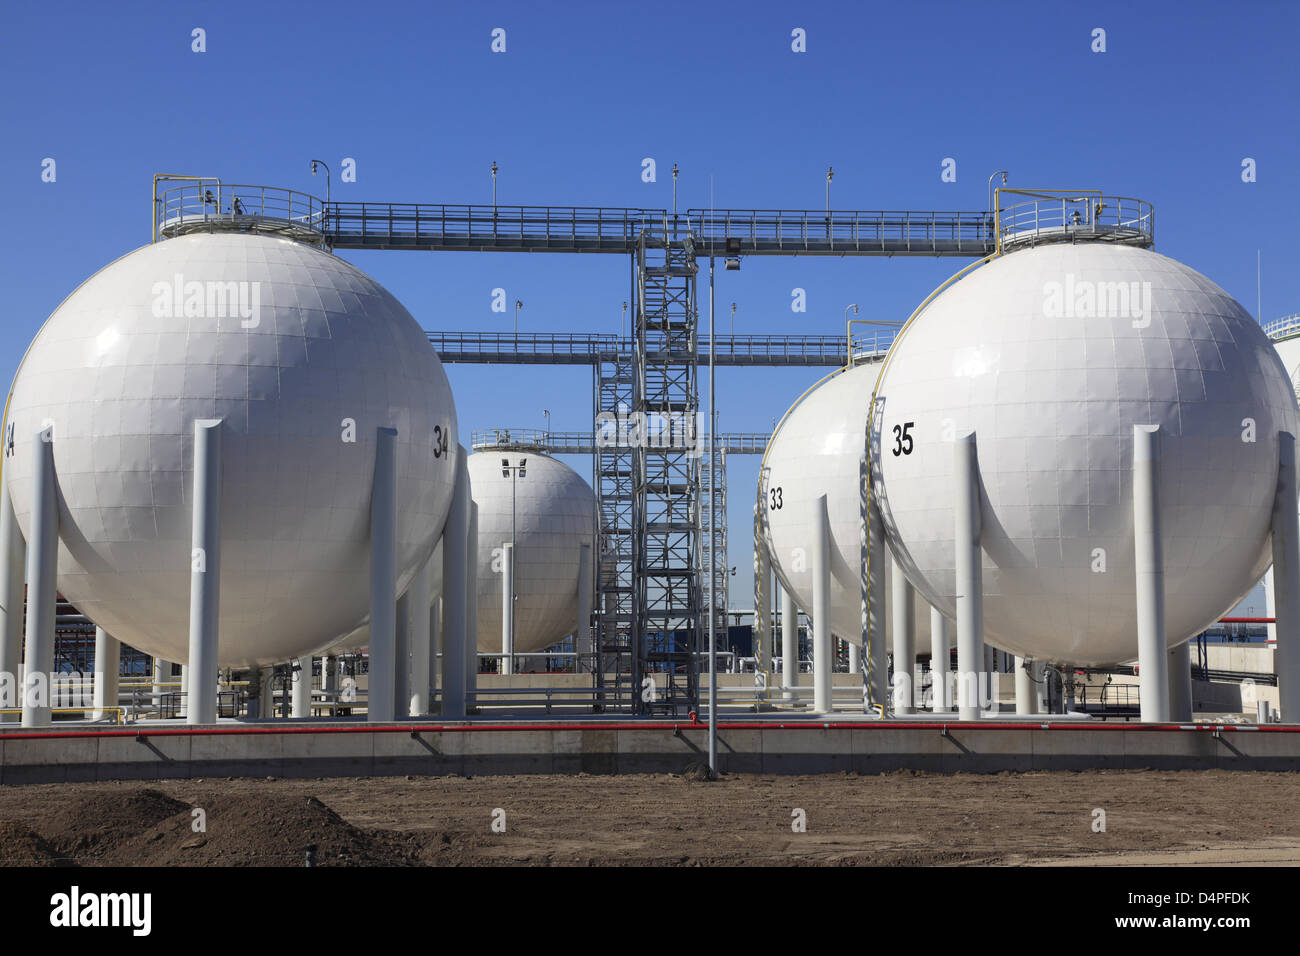 Large oil and gas tanks are pictured in the industrial harbour of Paldiski near Tallinn, Estonia, June 2009. Photo: Stock Photo